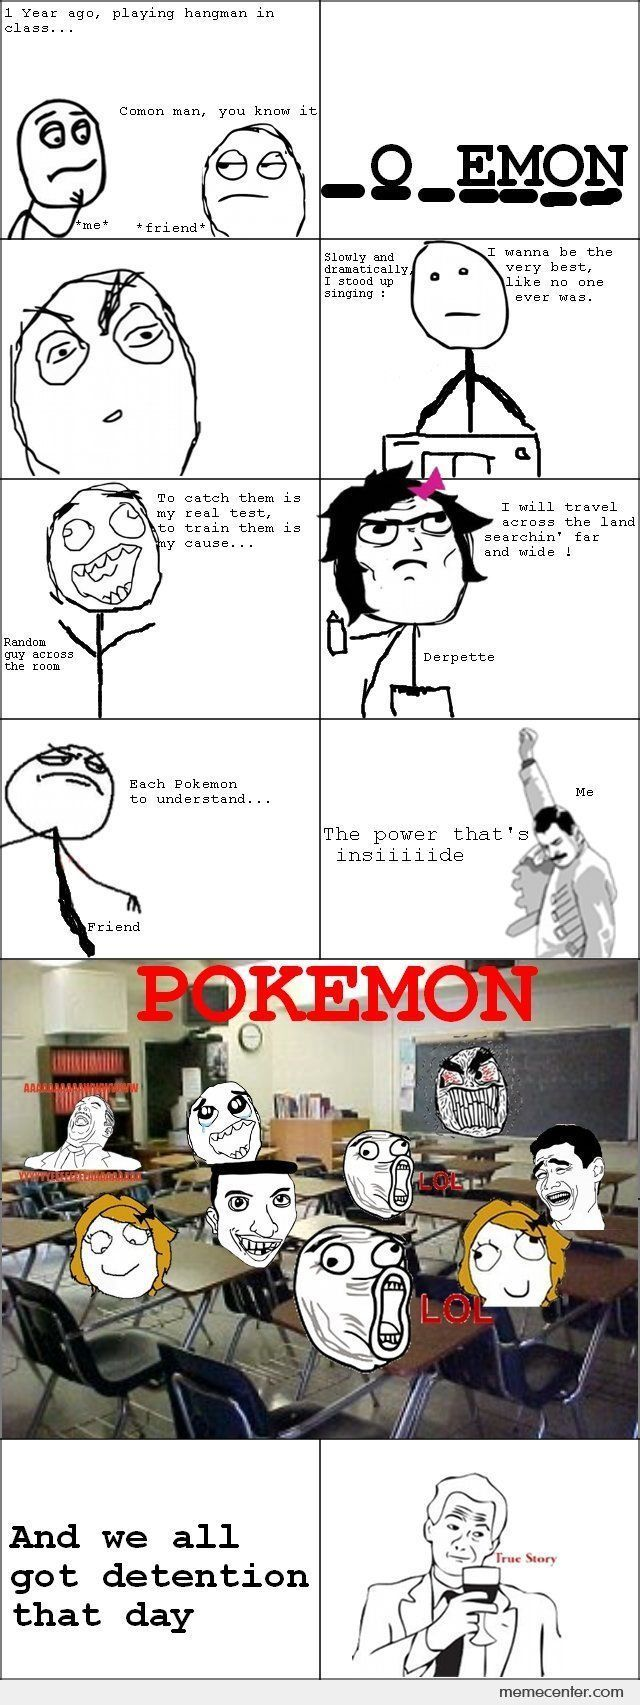 Best Meme Ever This Happened To Me And My Class With Thrift Shop In A Capella Version But We Didn T Get Detention Thank Pokemon Pokemon Funny Pokemon Memes